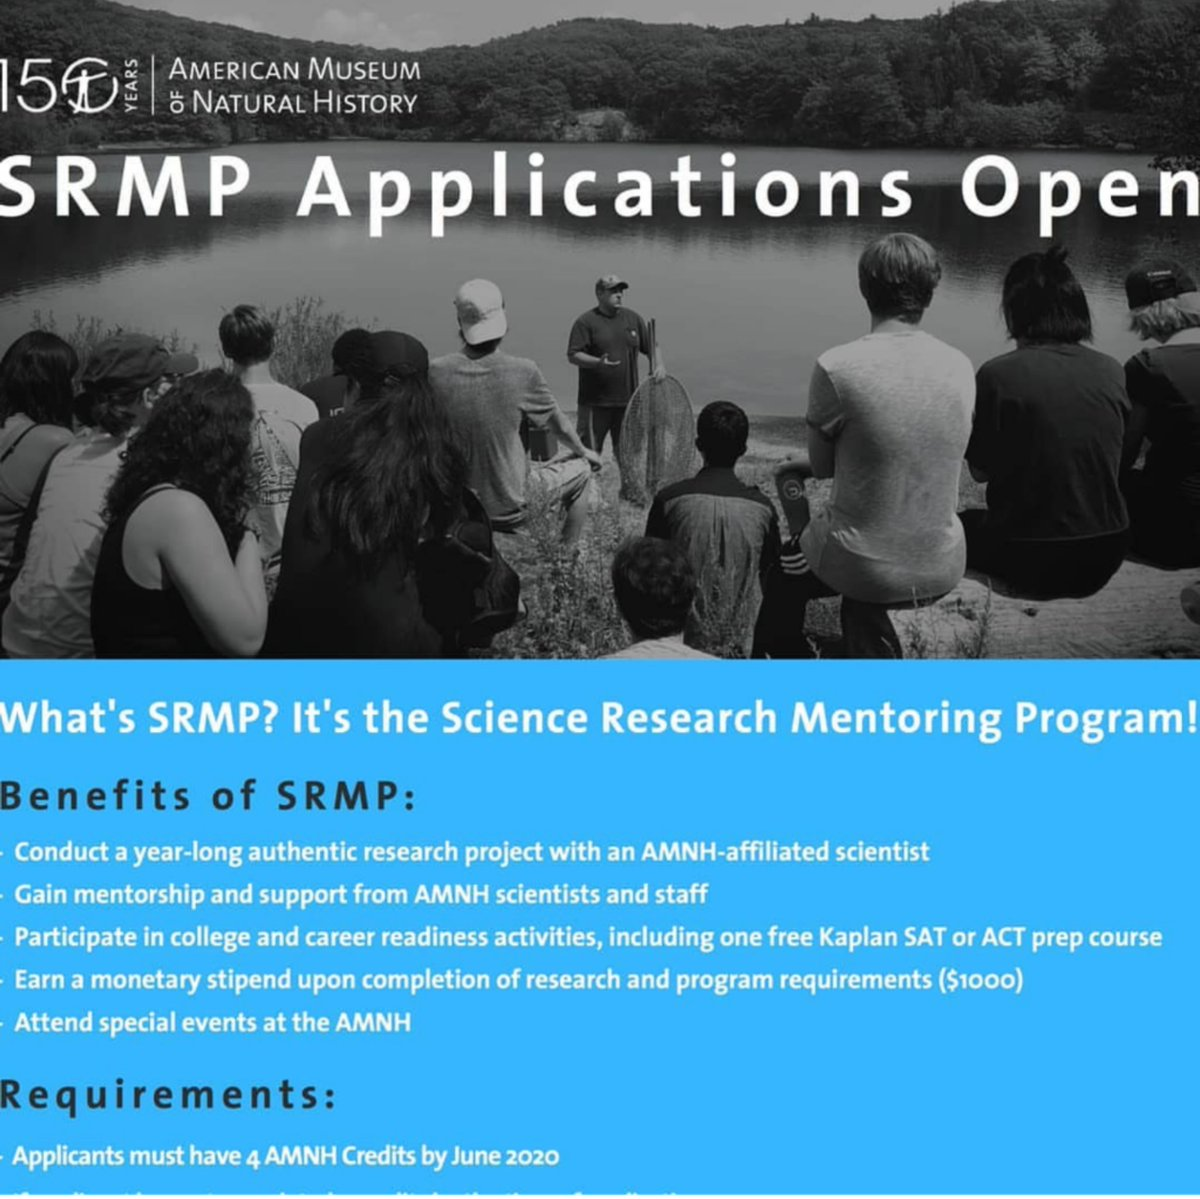 Cool opportunity for the high-schoolers in your life to come work with us at the @AMNH #srmp